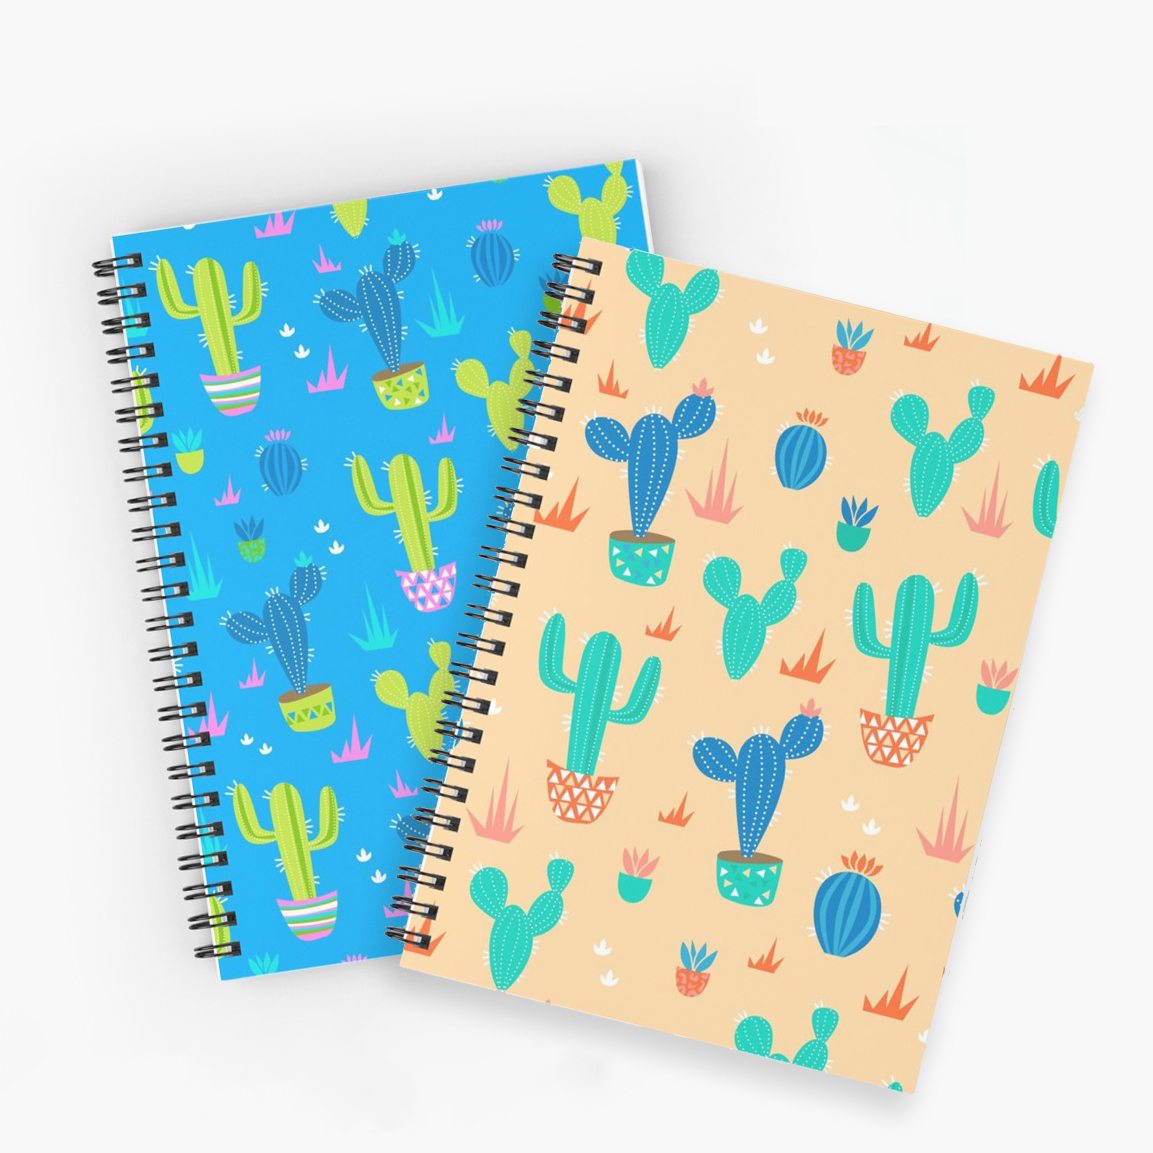 Cactus Notebook in 3 different color schemes in bright neon and blush pink and gold. Notebooks are the perfect thing for the new school year. Make notes, sketch, journal, keep on track to succeed this year.